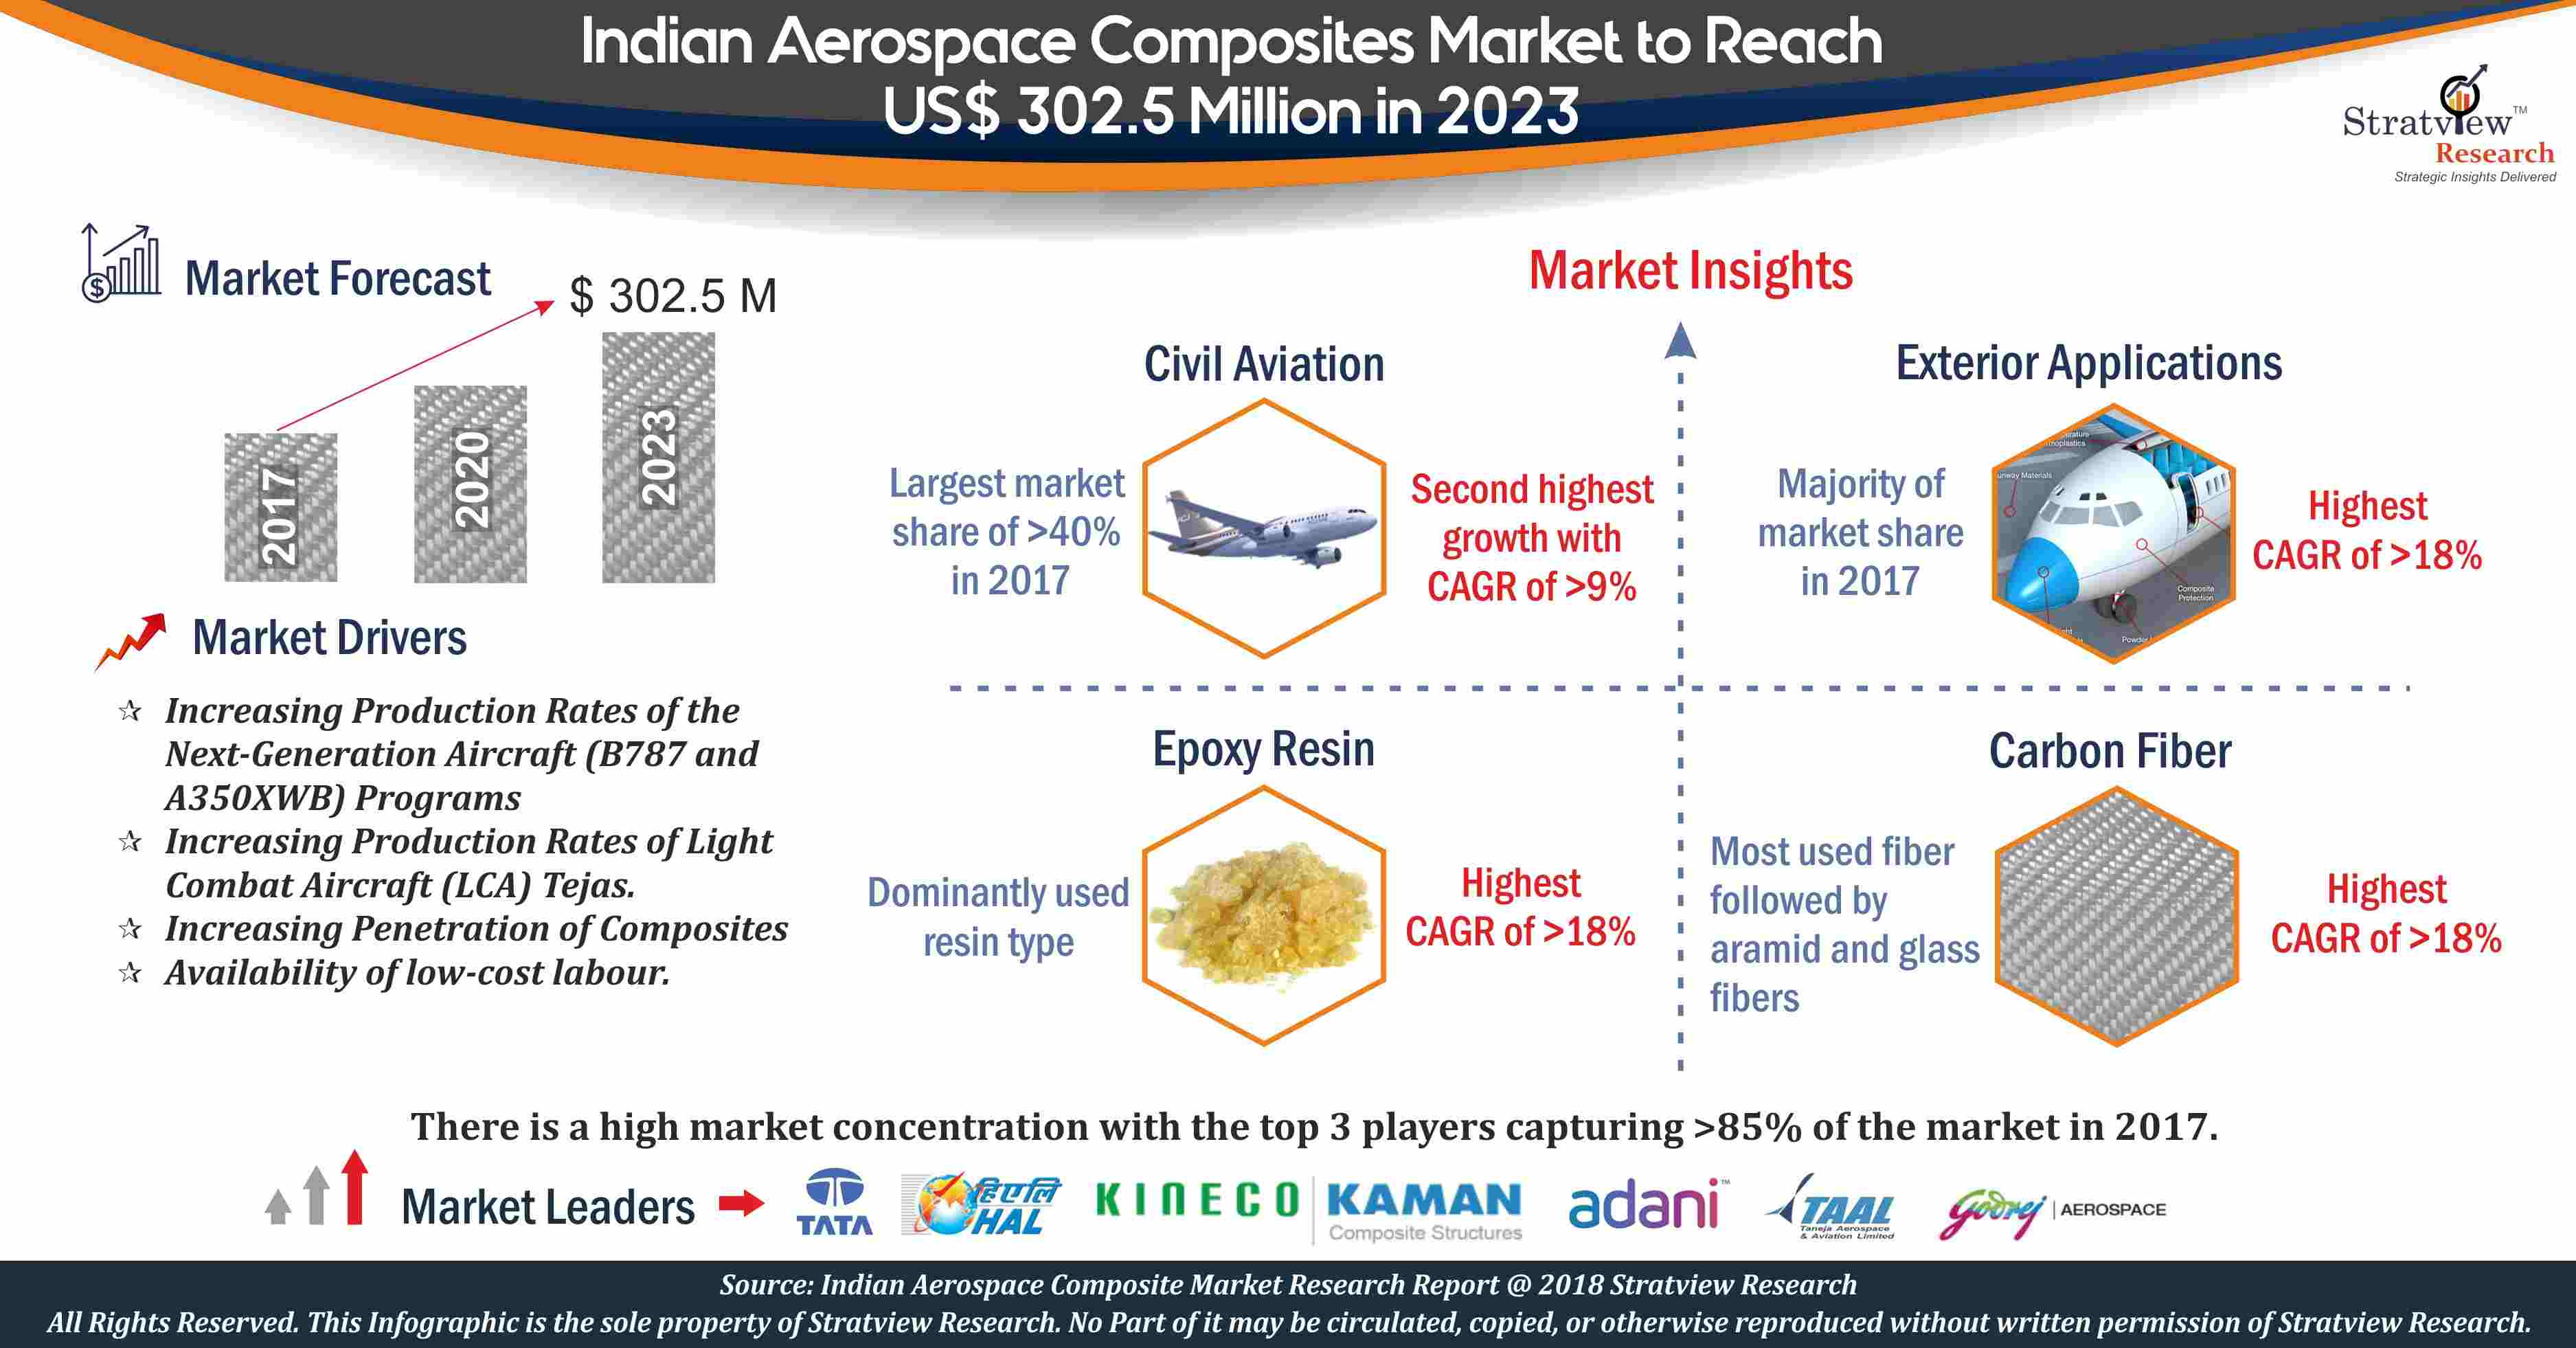 Indian Aerospace Composites Market Analysis